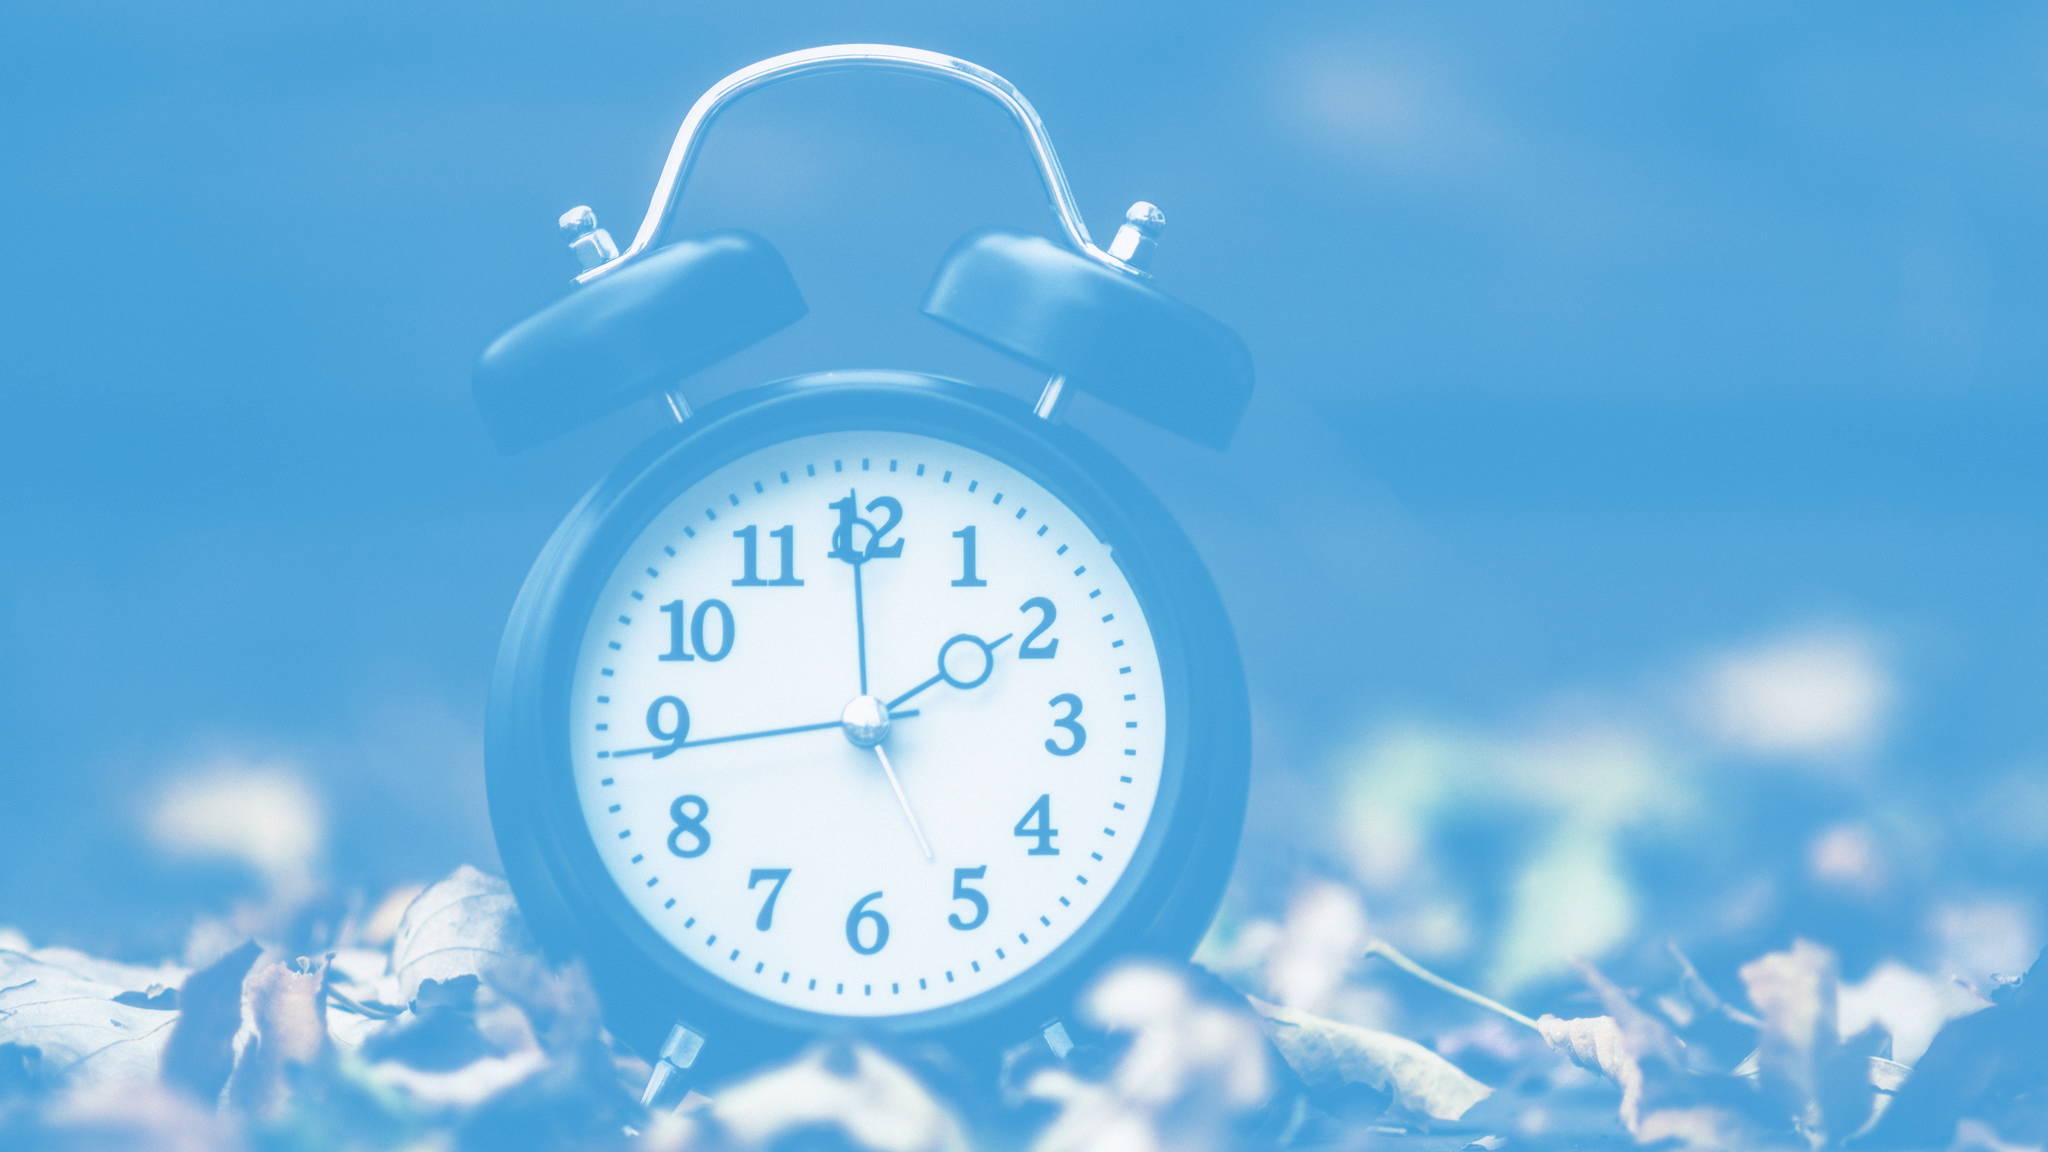 Time is limited – so how should we be spending it?